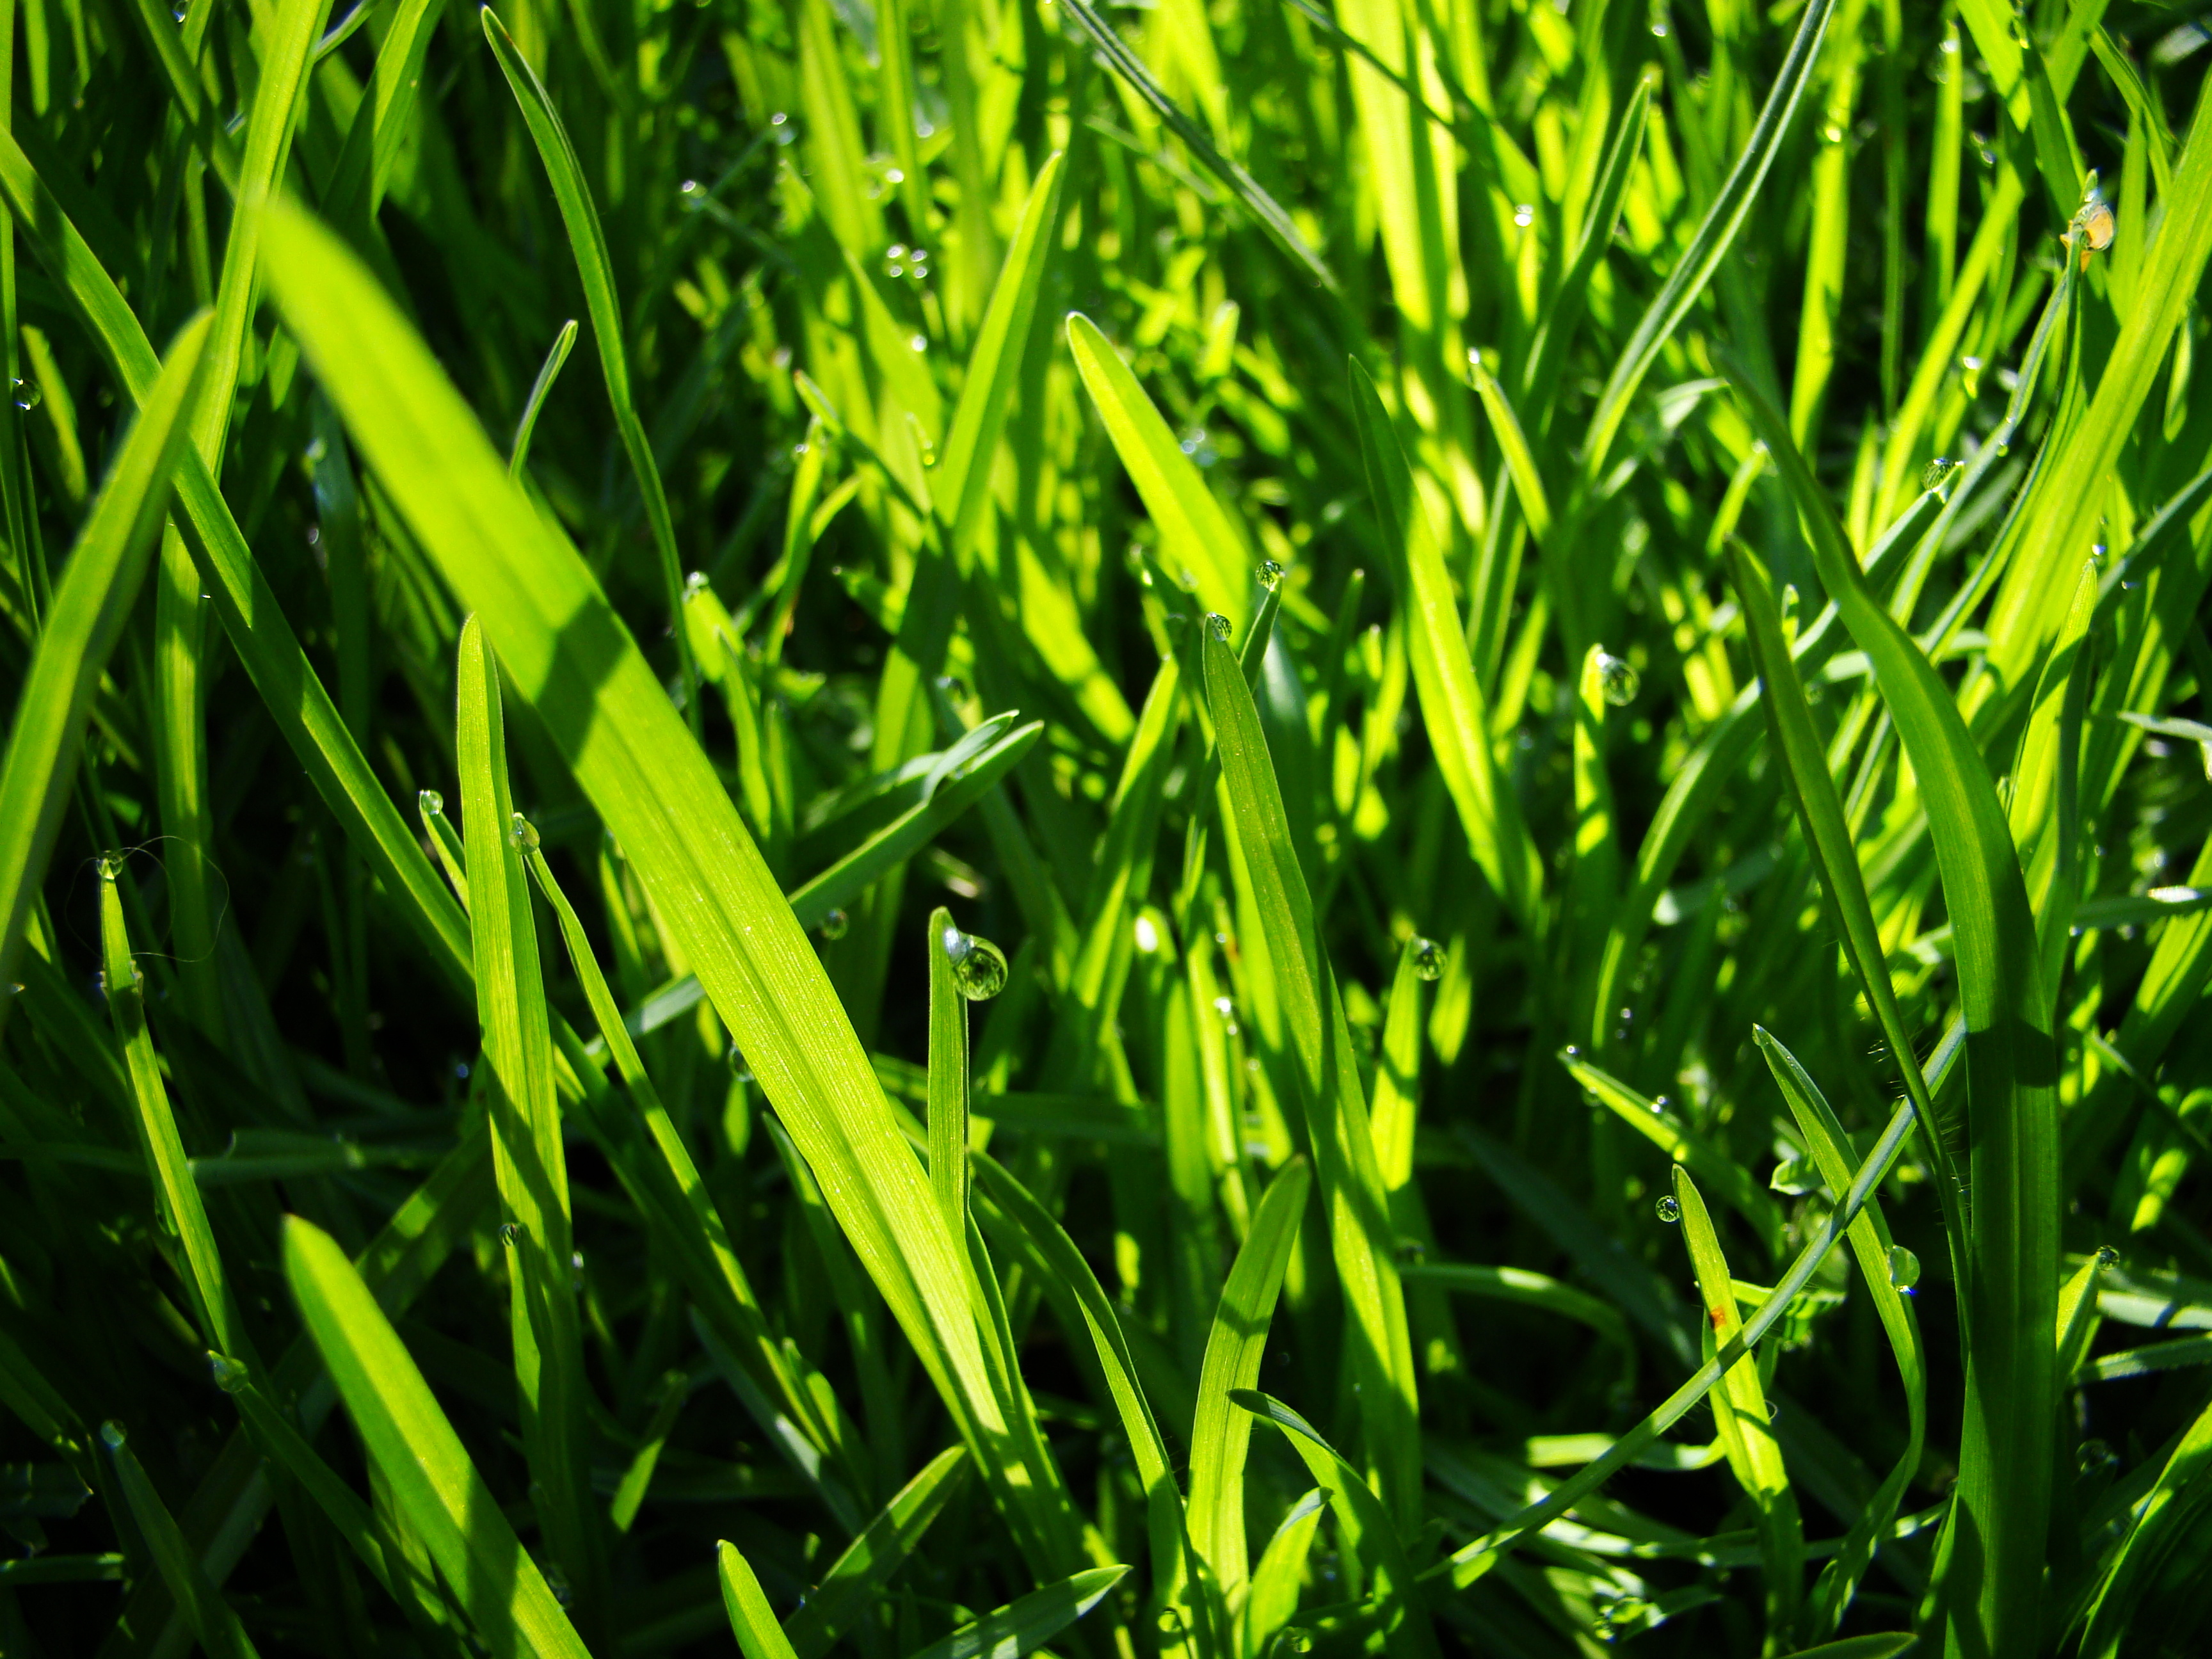 lawn one of My HD Wallpaper